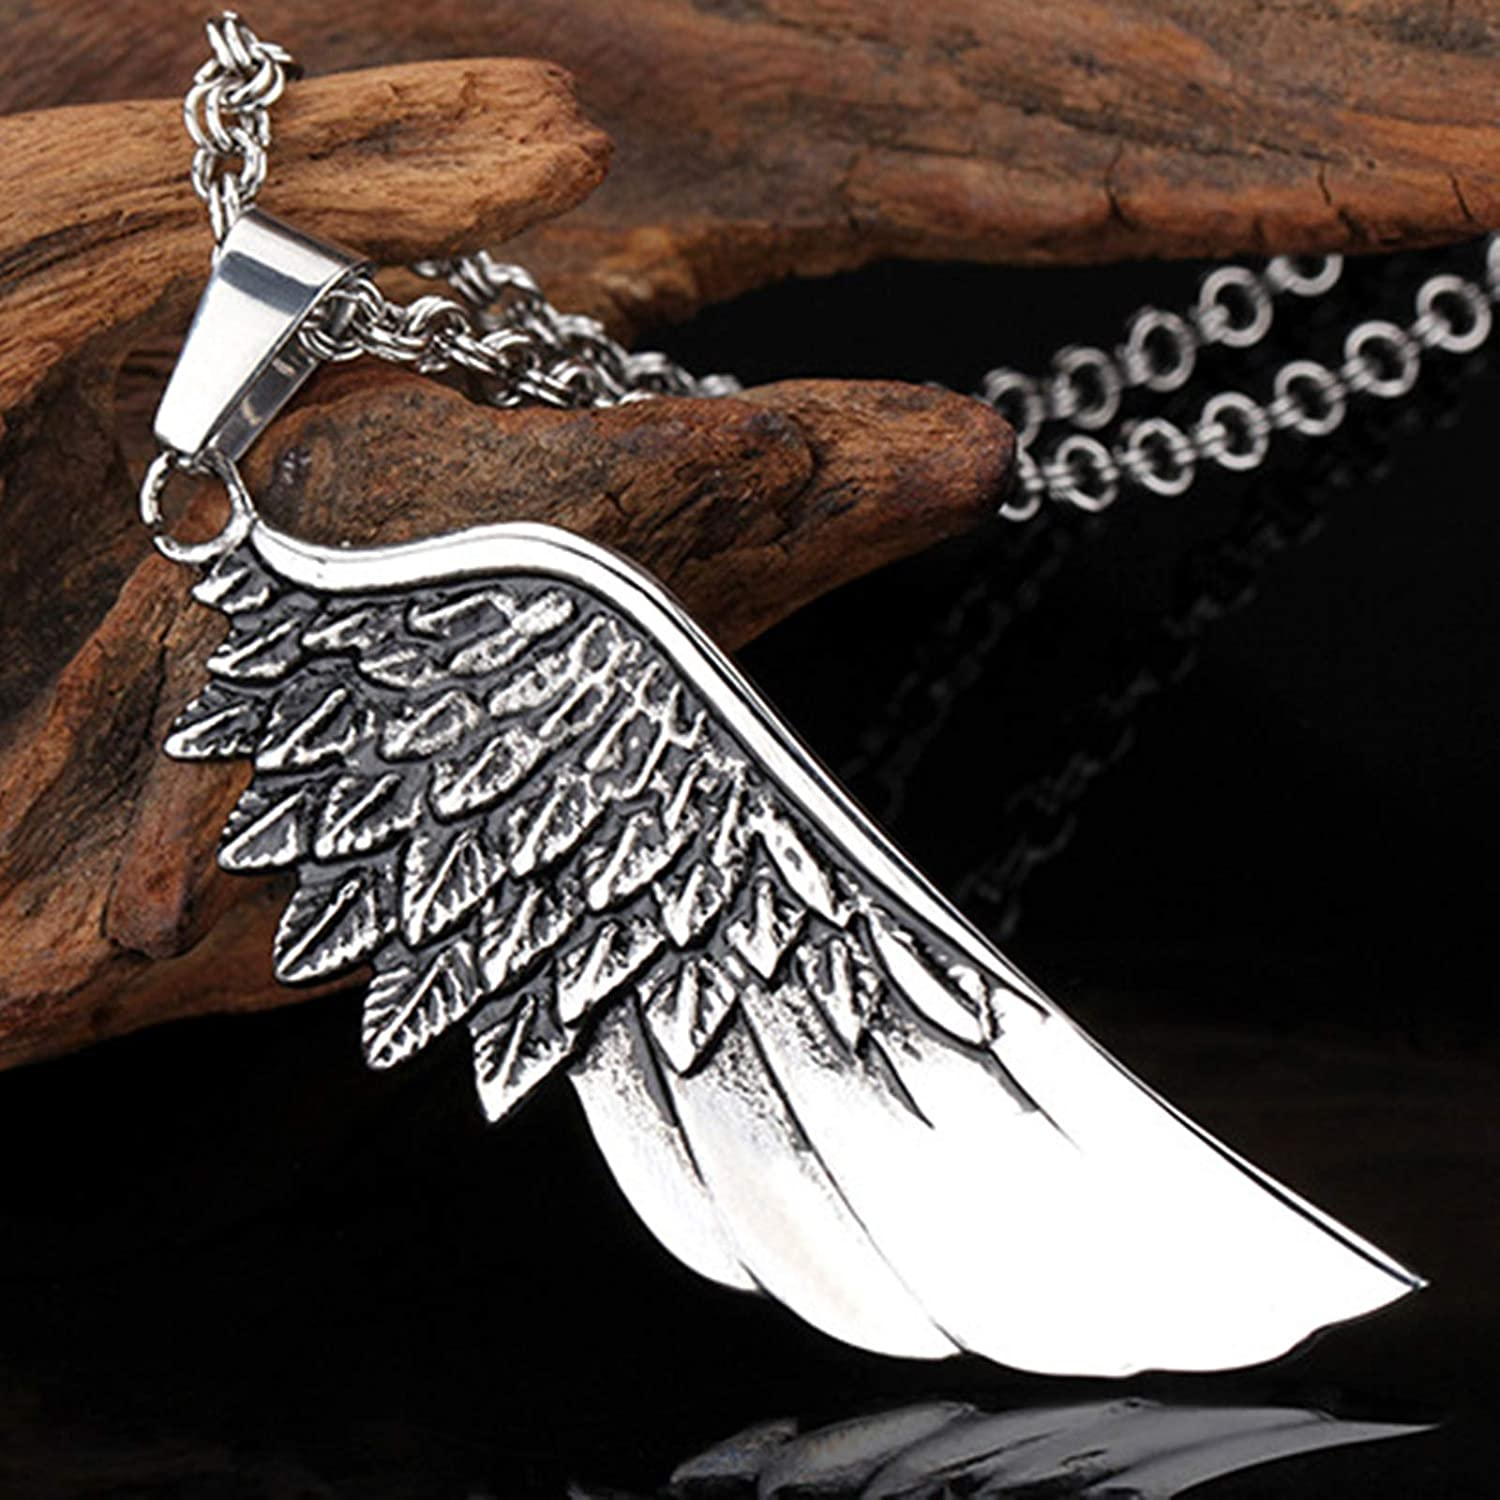 Daesar Pendant Necklace for Men Stainless Steel Wings Necklace Chain Silver